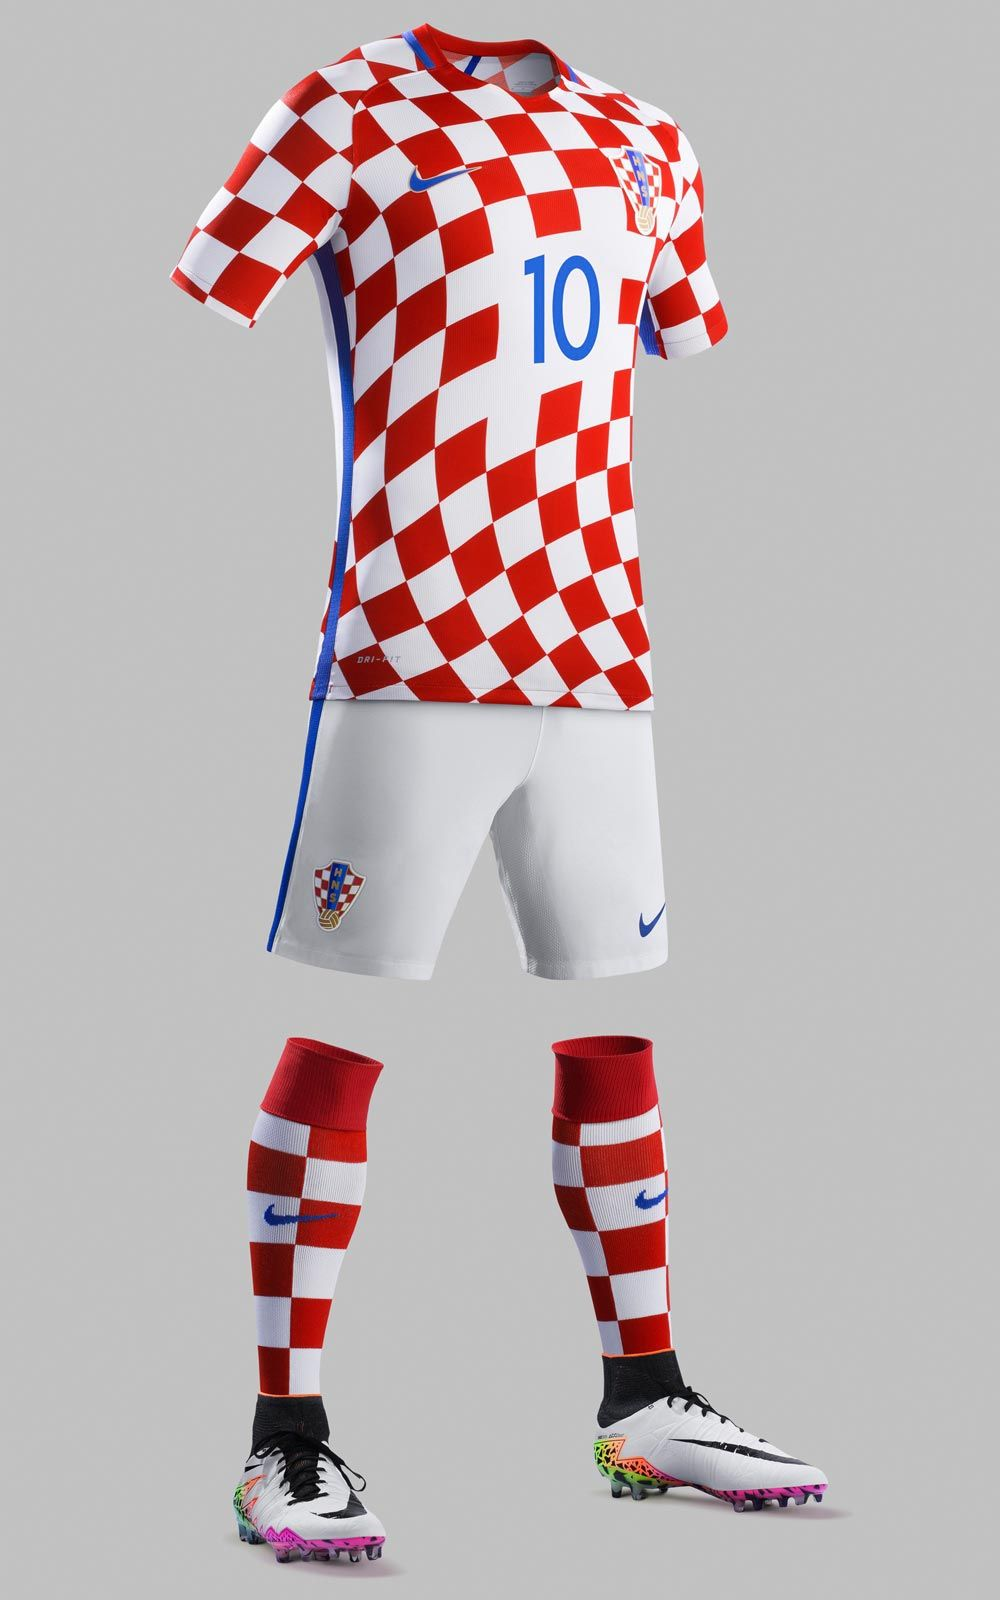 At last we see Croatia in their trademark checkerboard home kit! 9bbcc7cb7